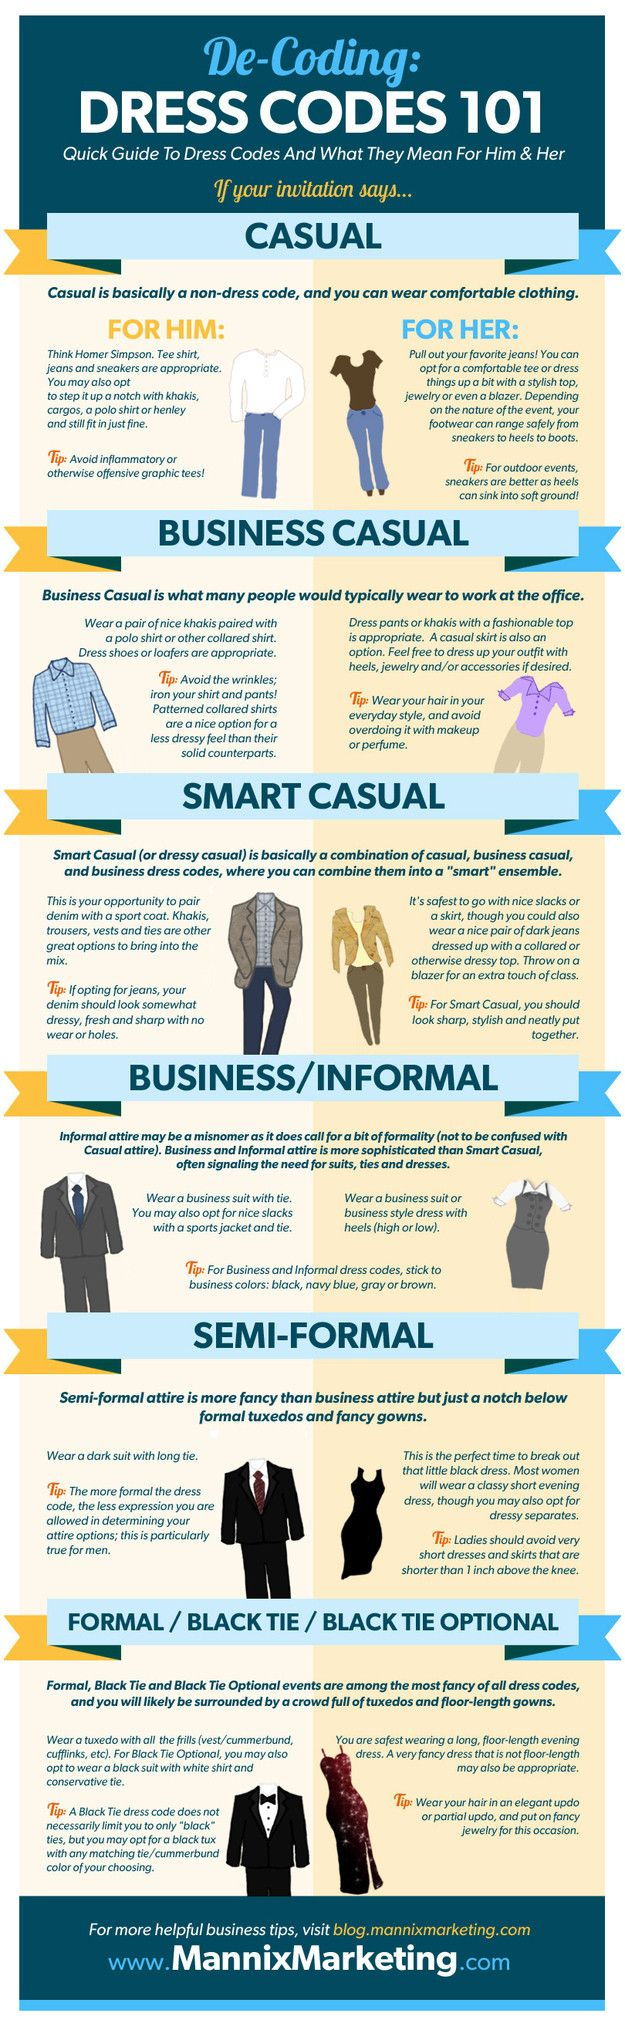 Perfect for helping any gender figure out what to wear when the event has a dress code! I love this because I struggle with the subtle differences in the categories.